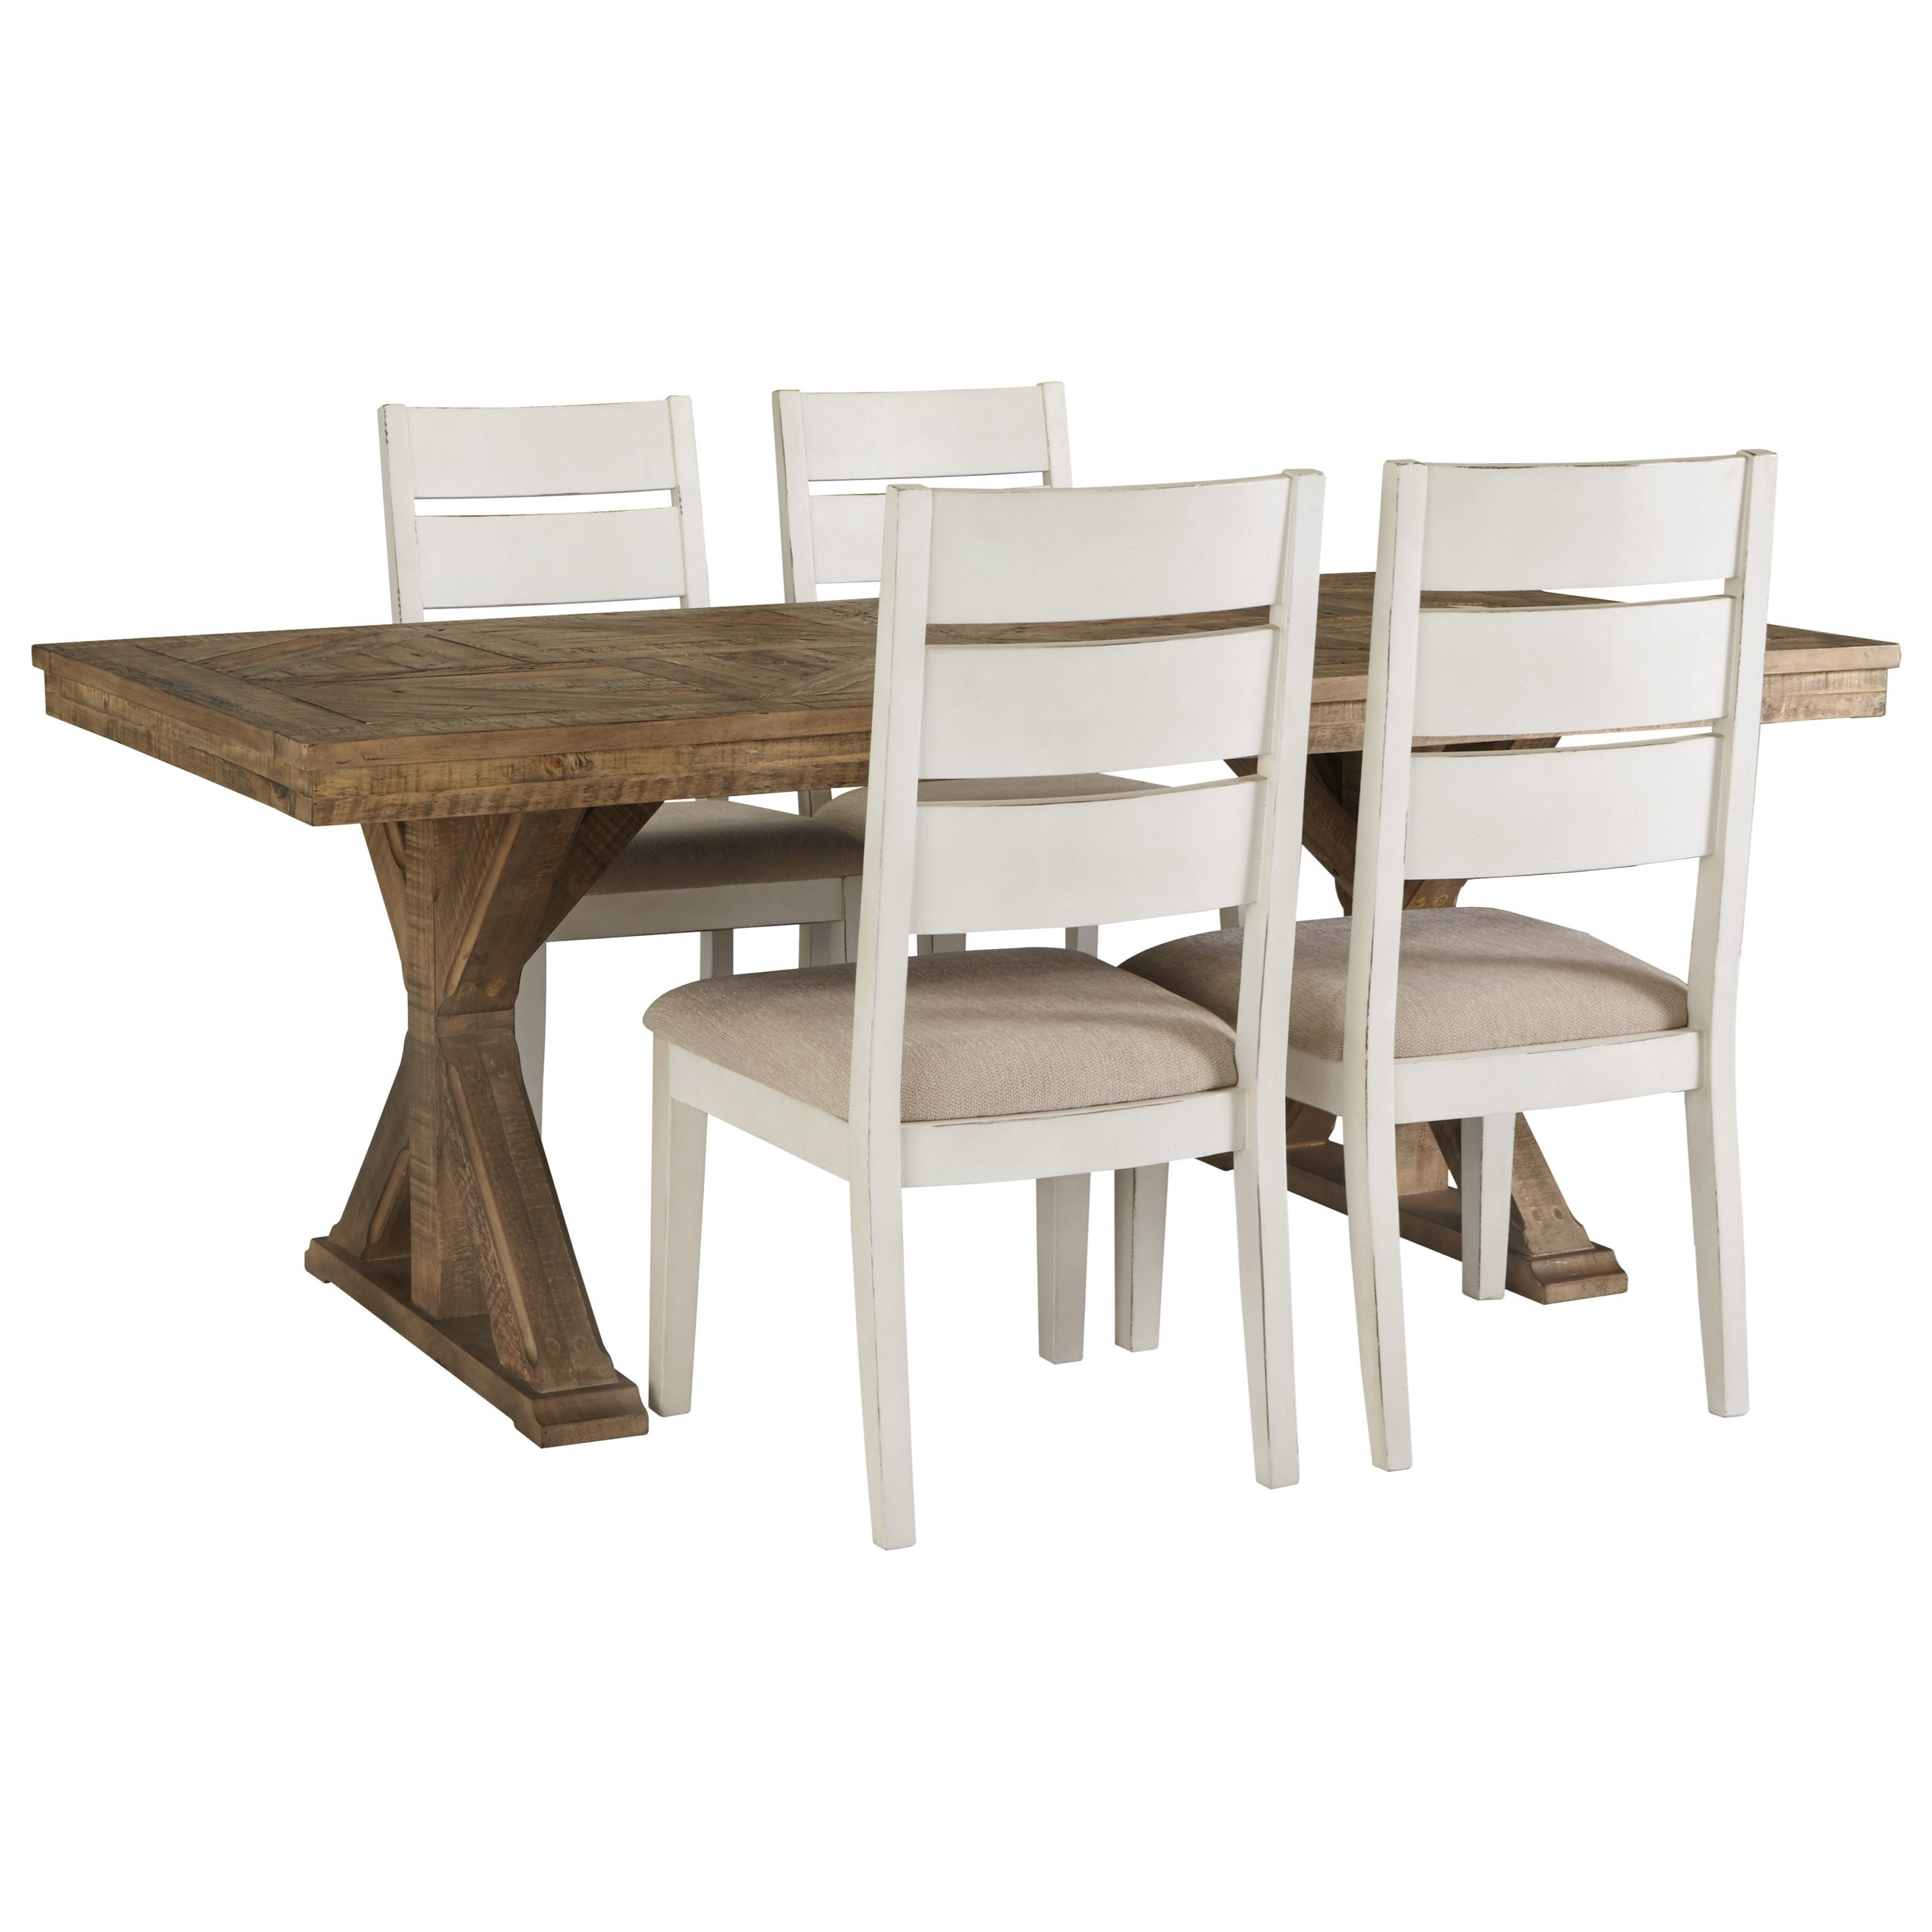 Grindleburg 5 Piece Rectangular Table and Chair Set by Signature Design by Ashley at Northeast Factory Direct